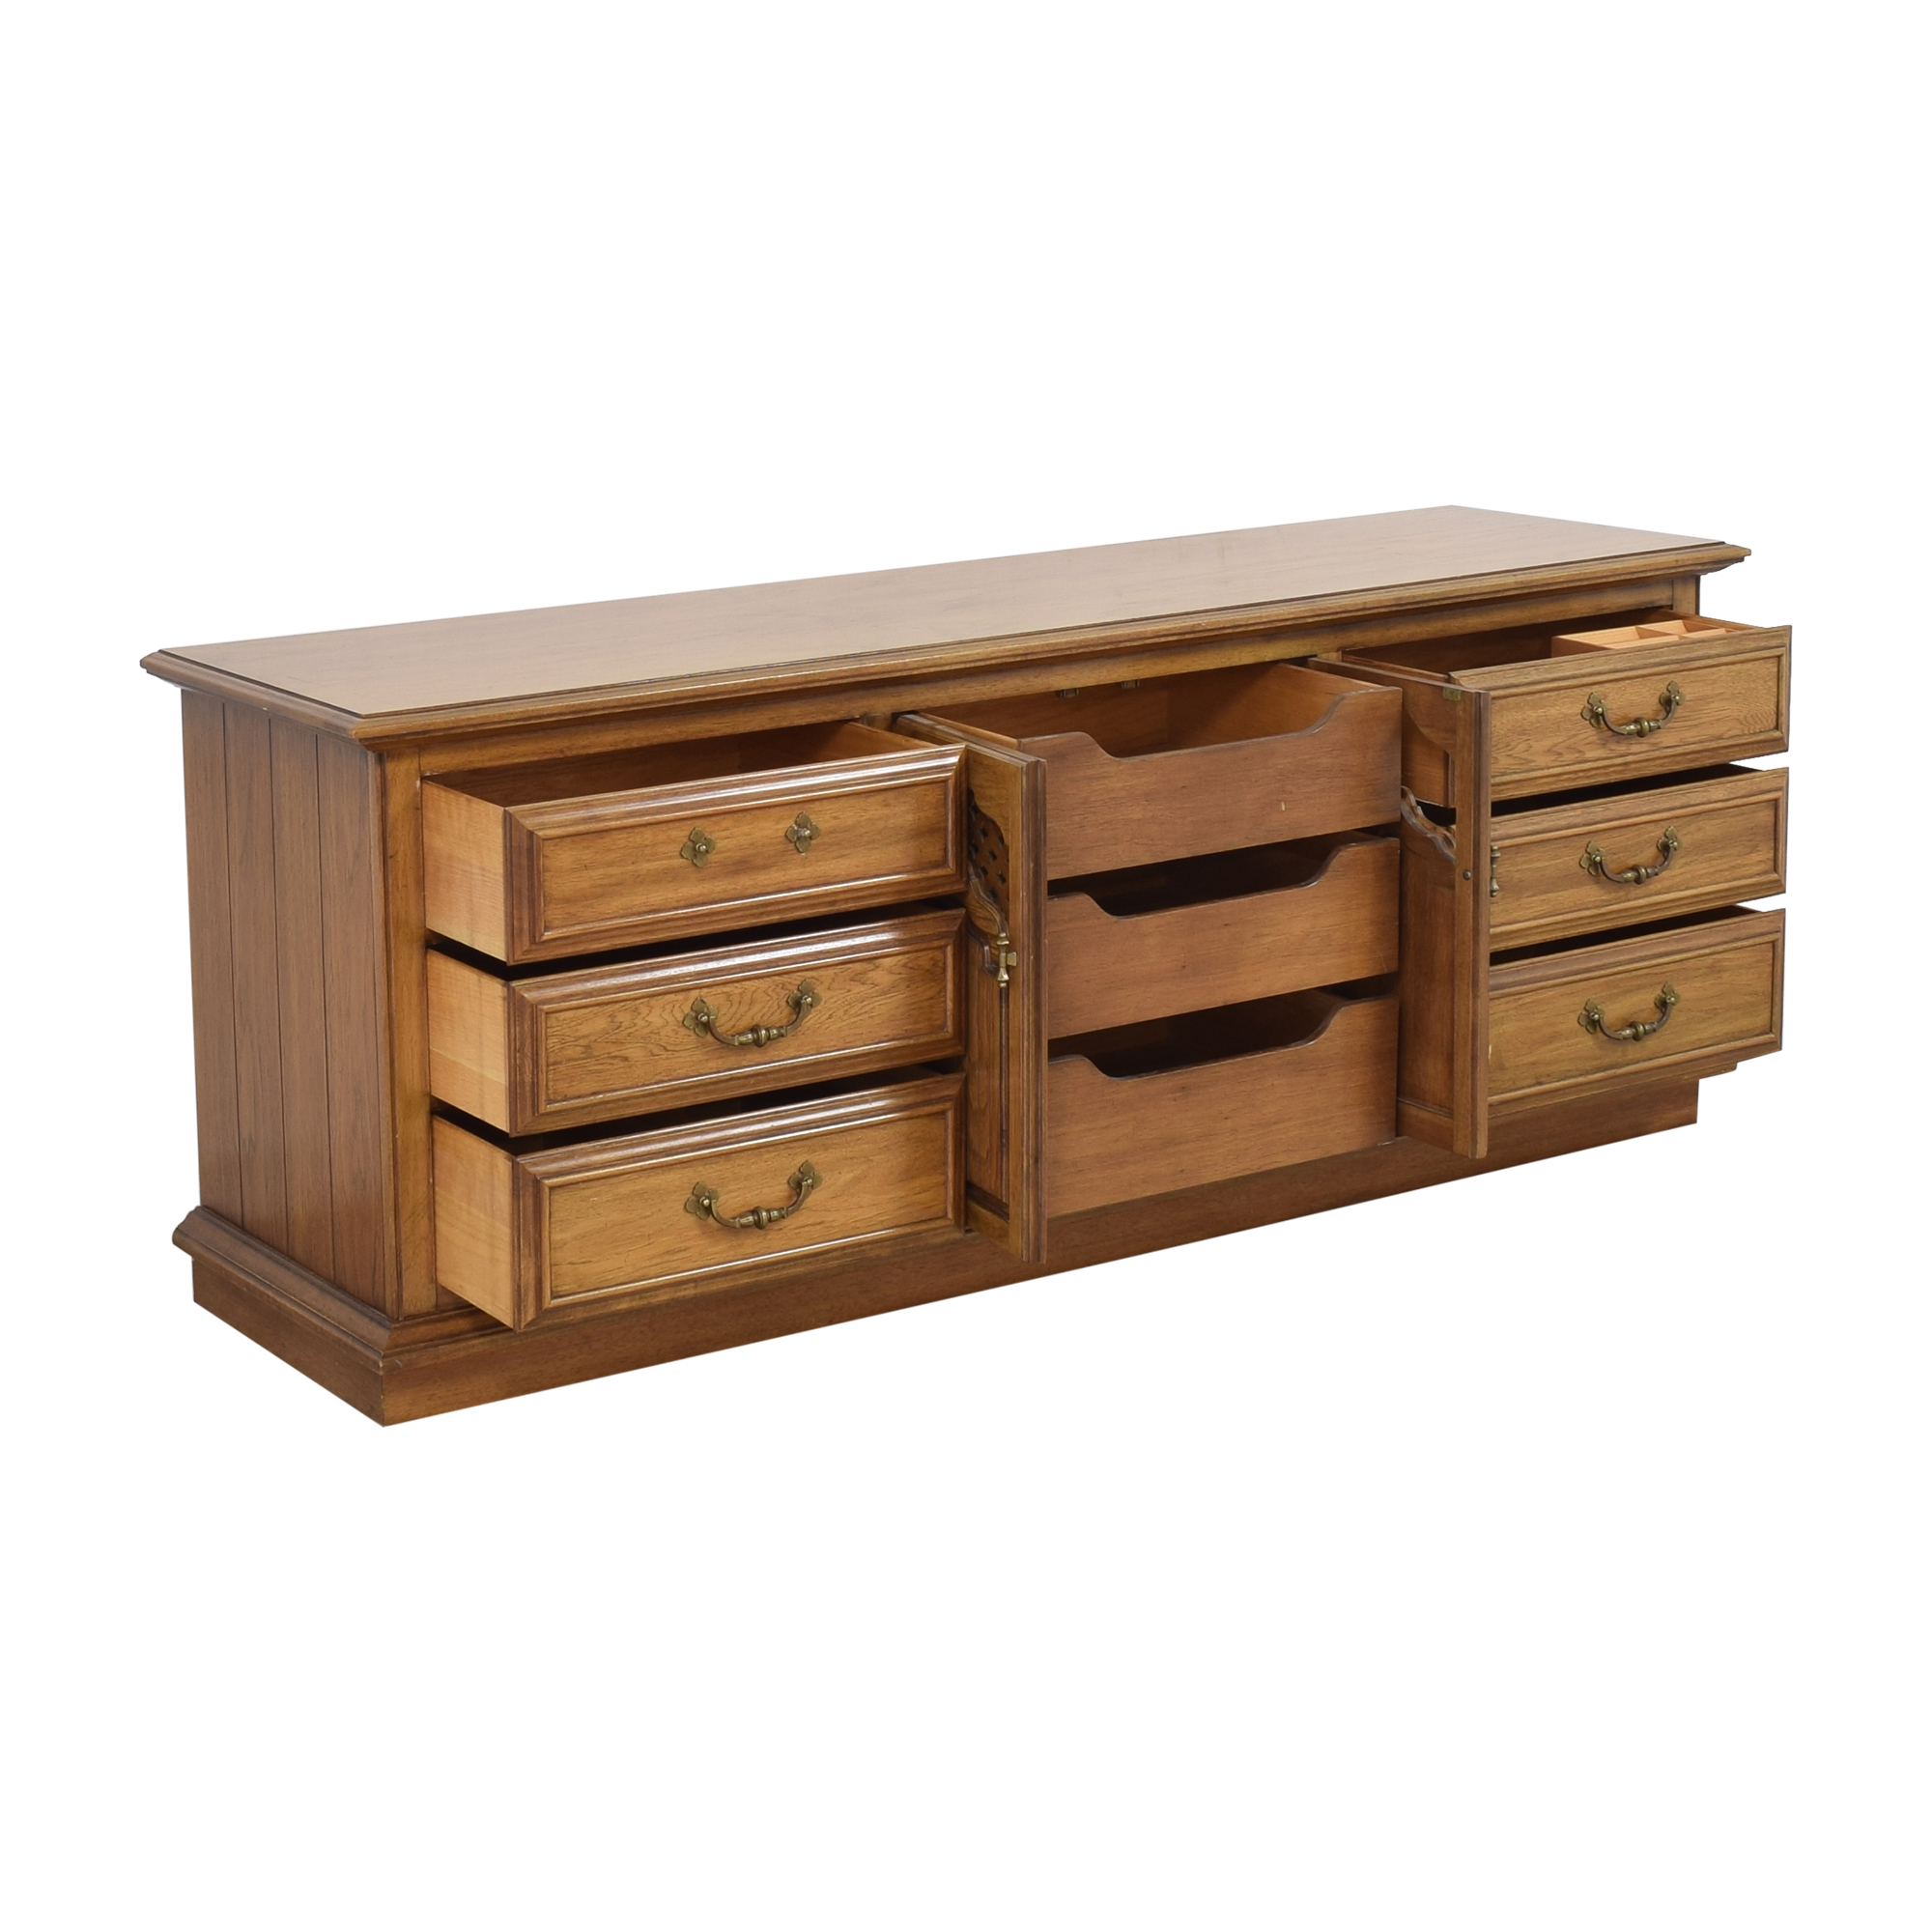 Thomasville Thomasville Triple Dresser with Cabinet pa